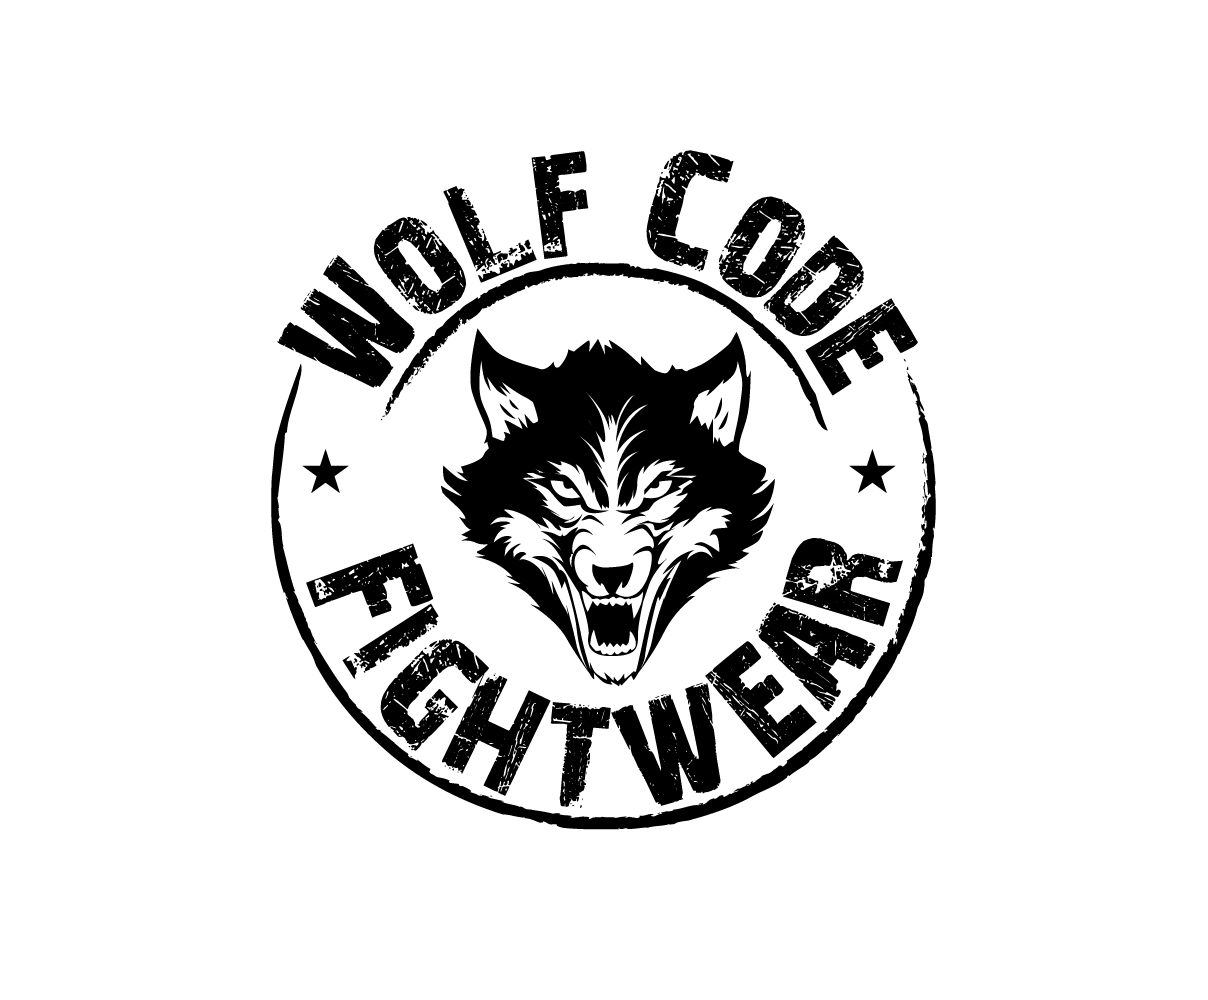 Scary Wolf logo by Graphicsexpert